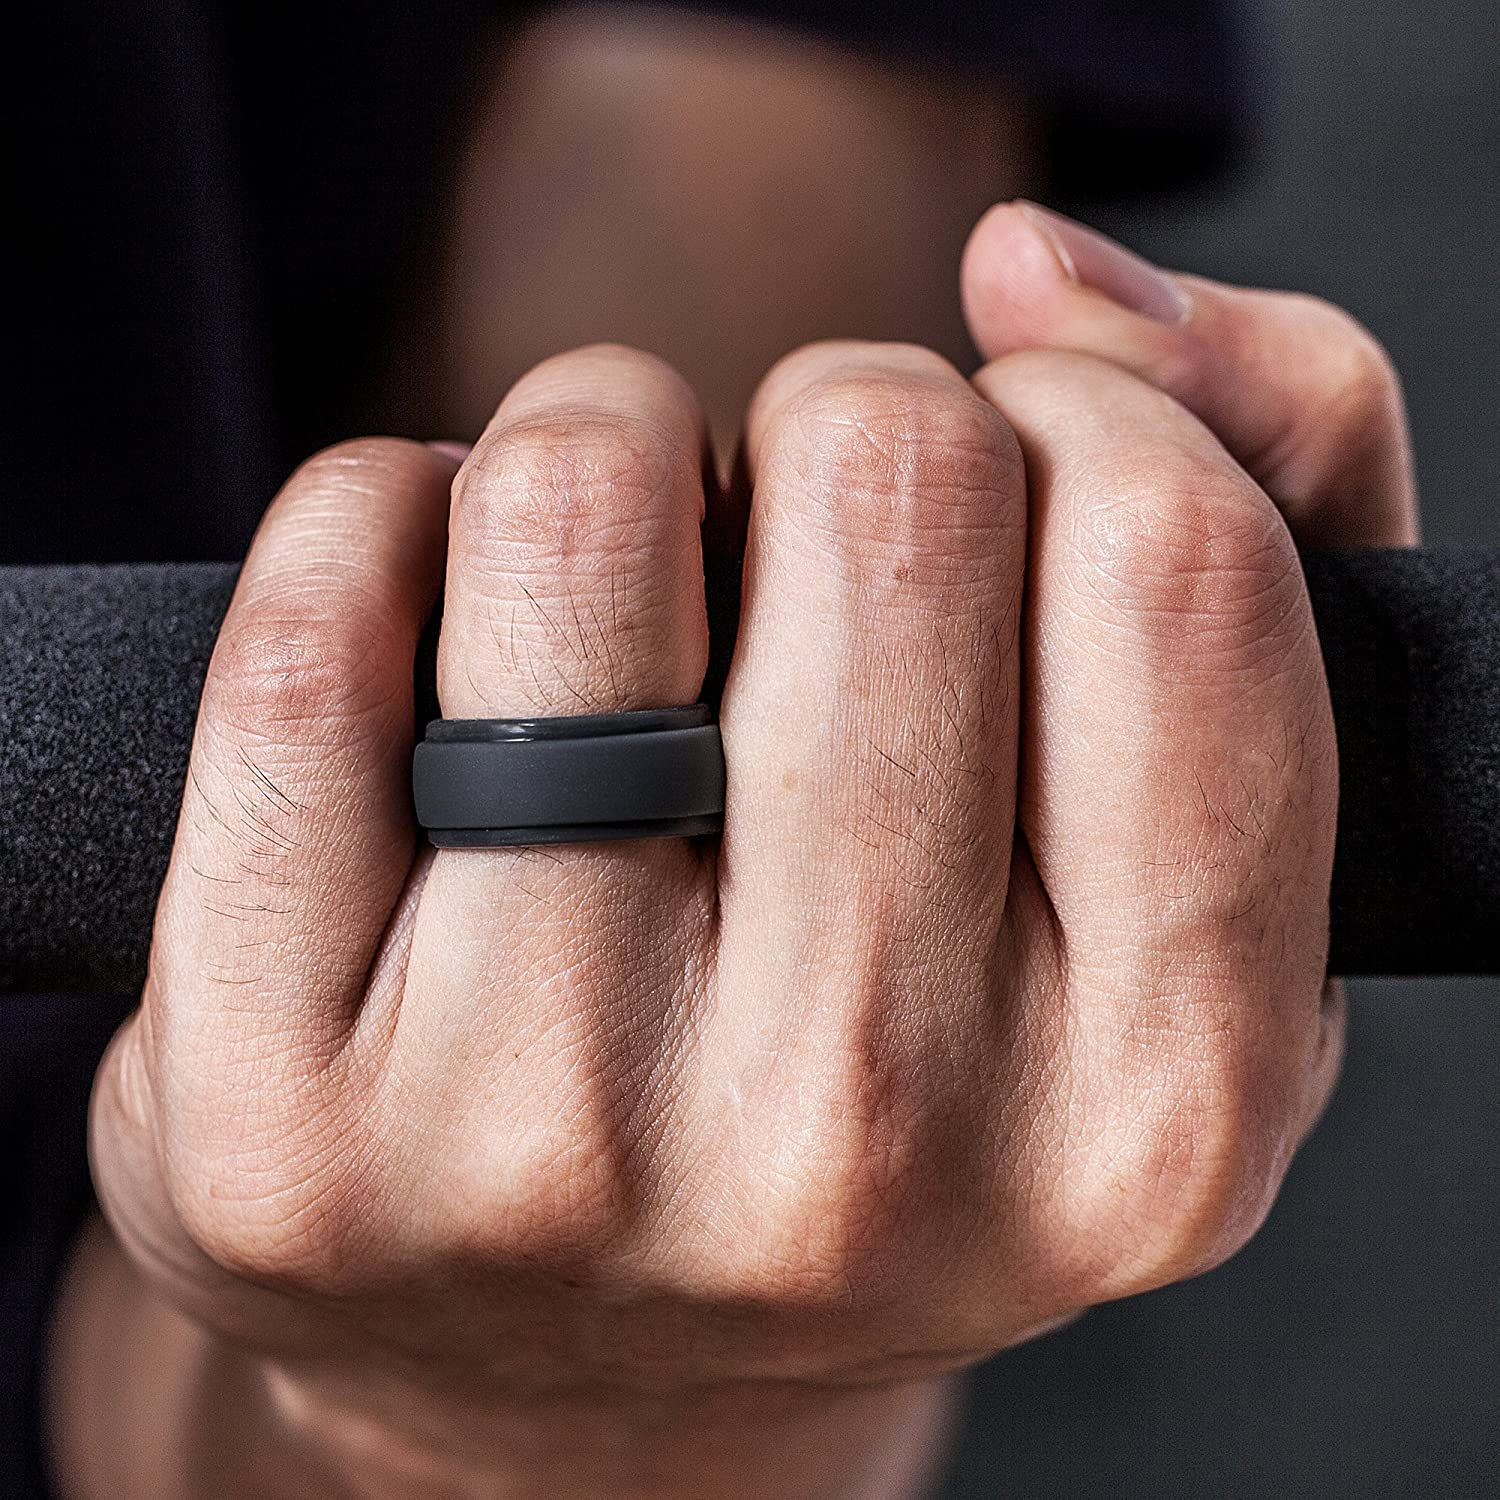 2.5mm Thick 7 Rings 4 Rings 1 Ring Step Edge Rubber Wedding Bands 10mm Wide ThunderFit Silicone Rings for Men